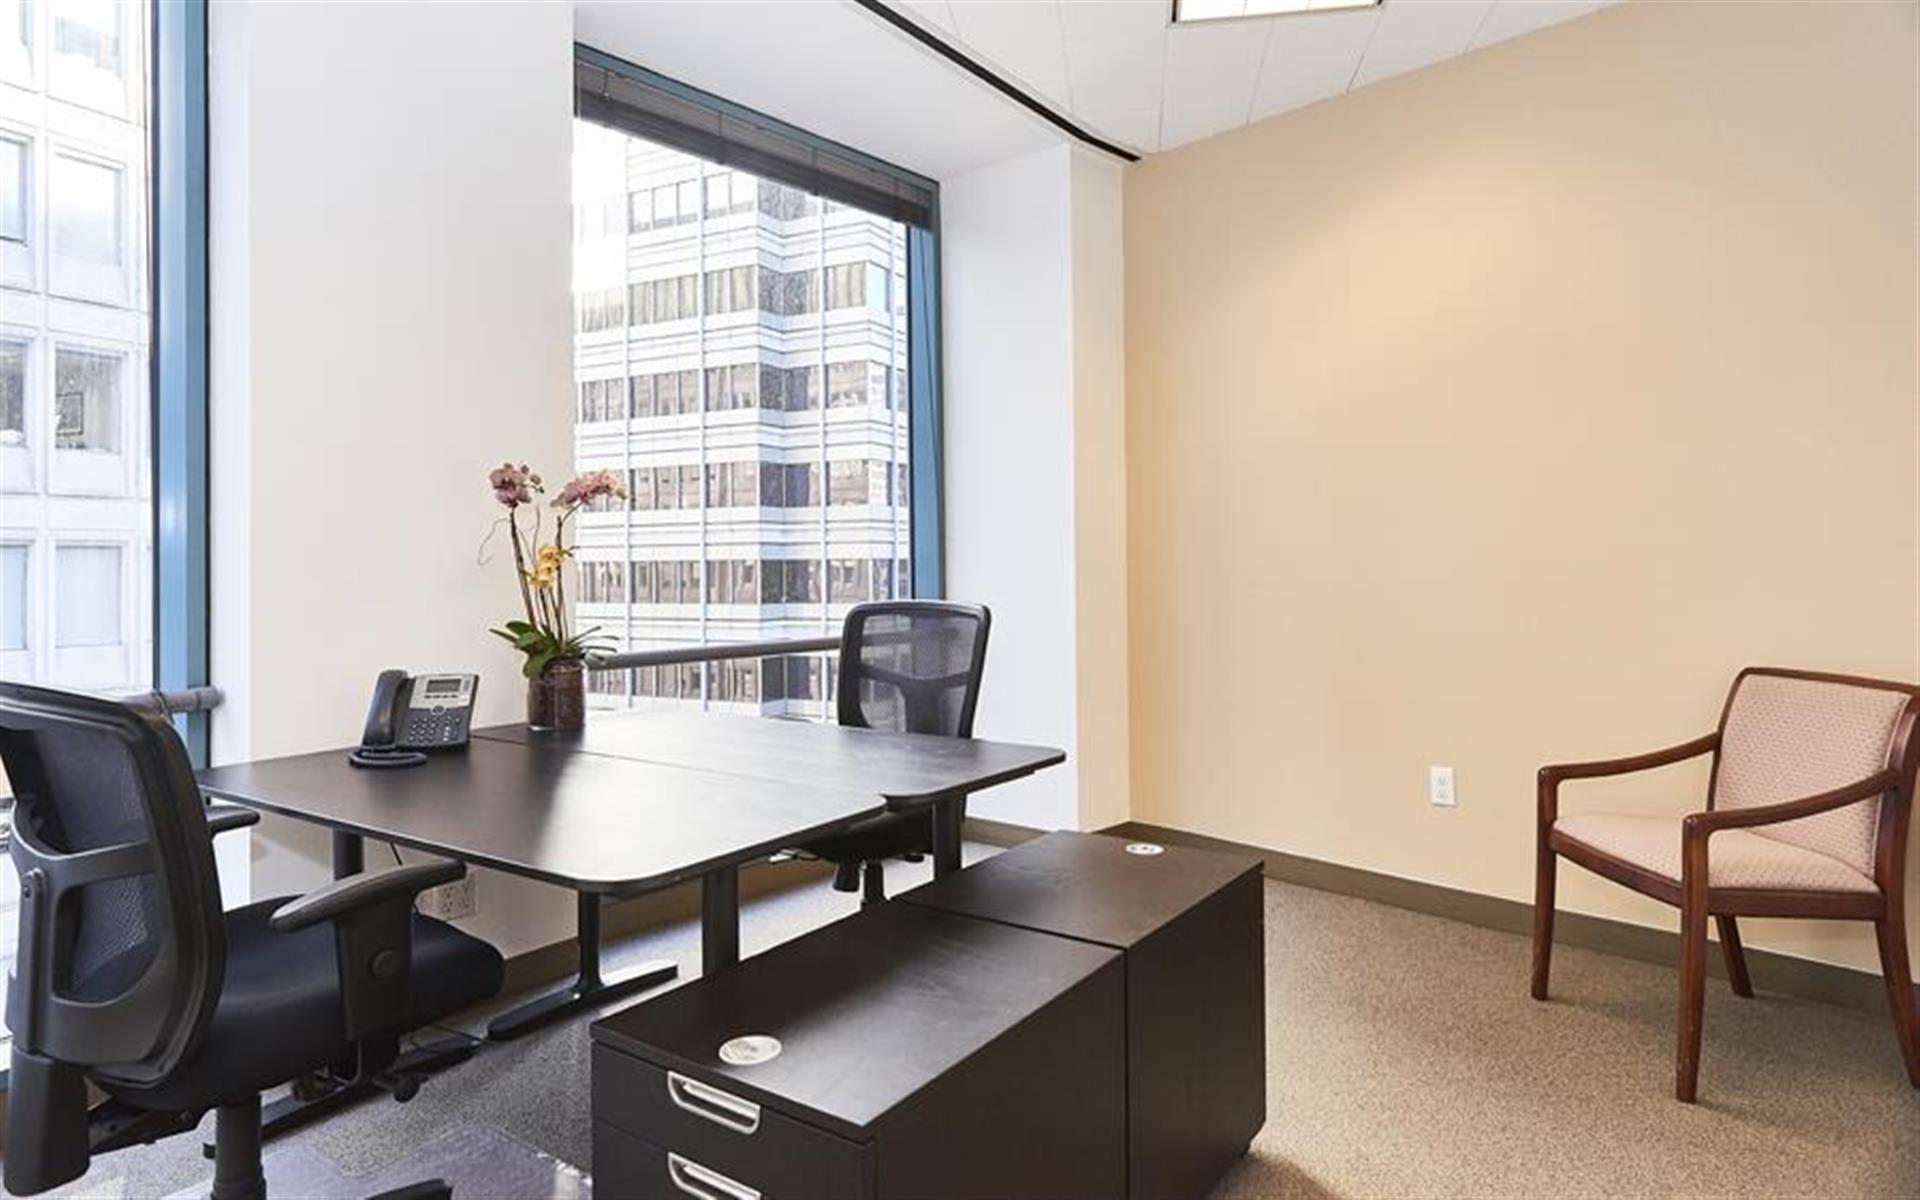 Raven Office Centers - 388 Market - Day Office 8